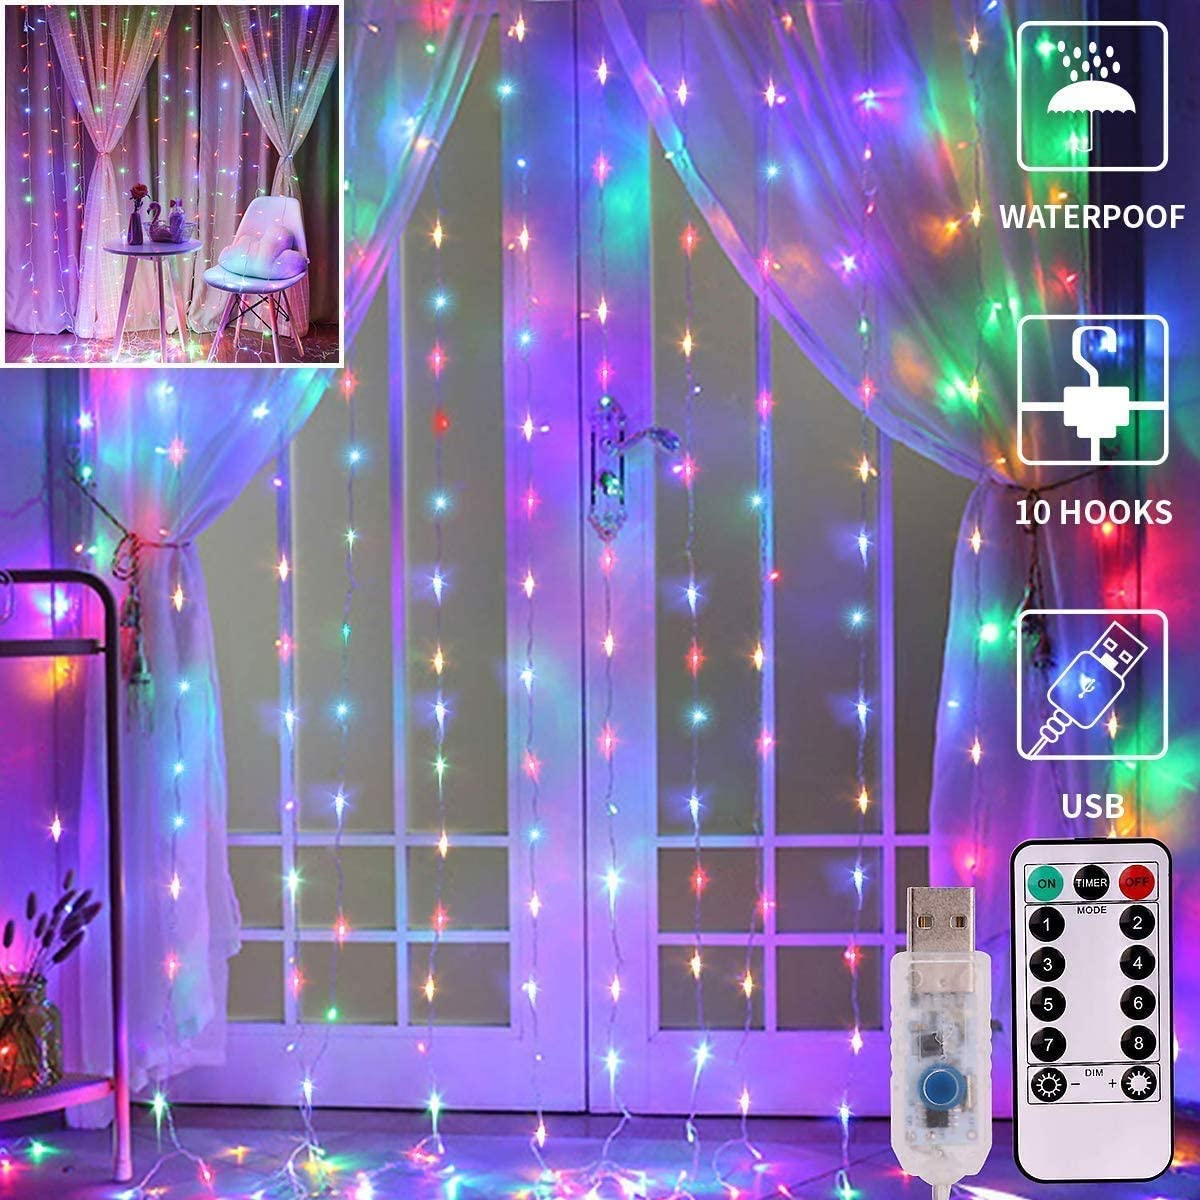 Meliven Curtain Lights, 8 Colors Curtain String Lights USB Powered, 9.8Ftx9.8Ft 300 LED Fairy String Lights with Remote, Indoor Outdoor Decorative Twinkle Lights for Bedroom, Patio, Party Wedding